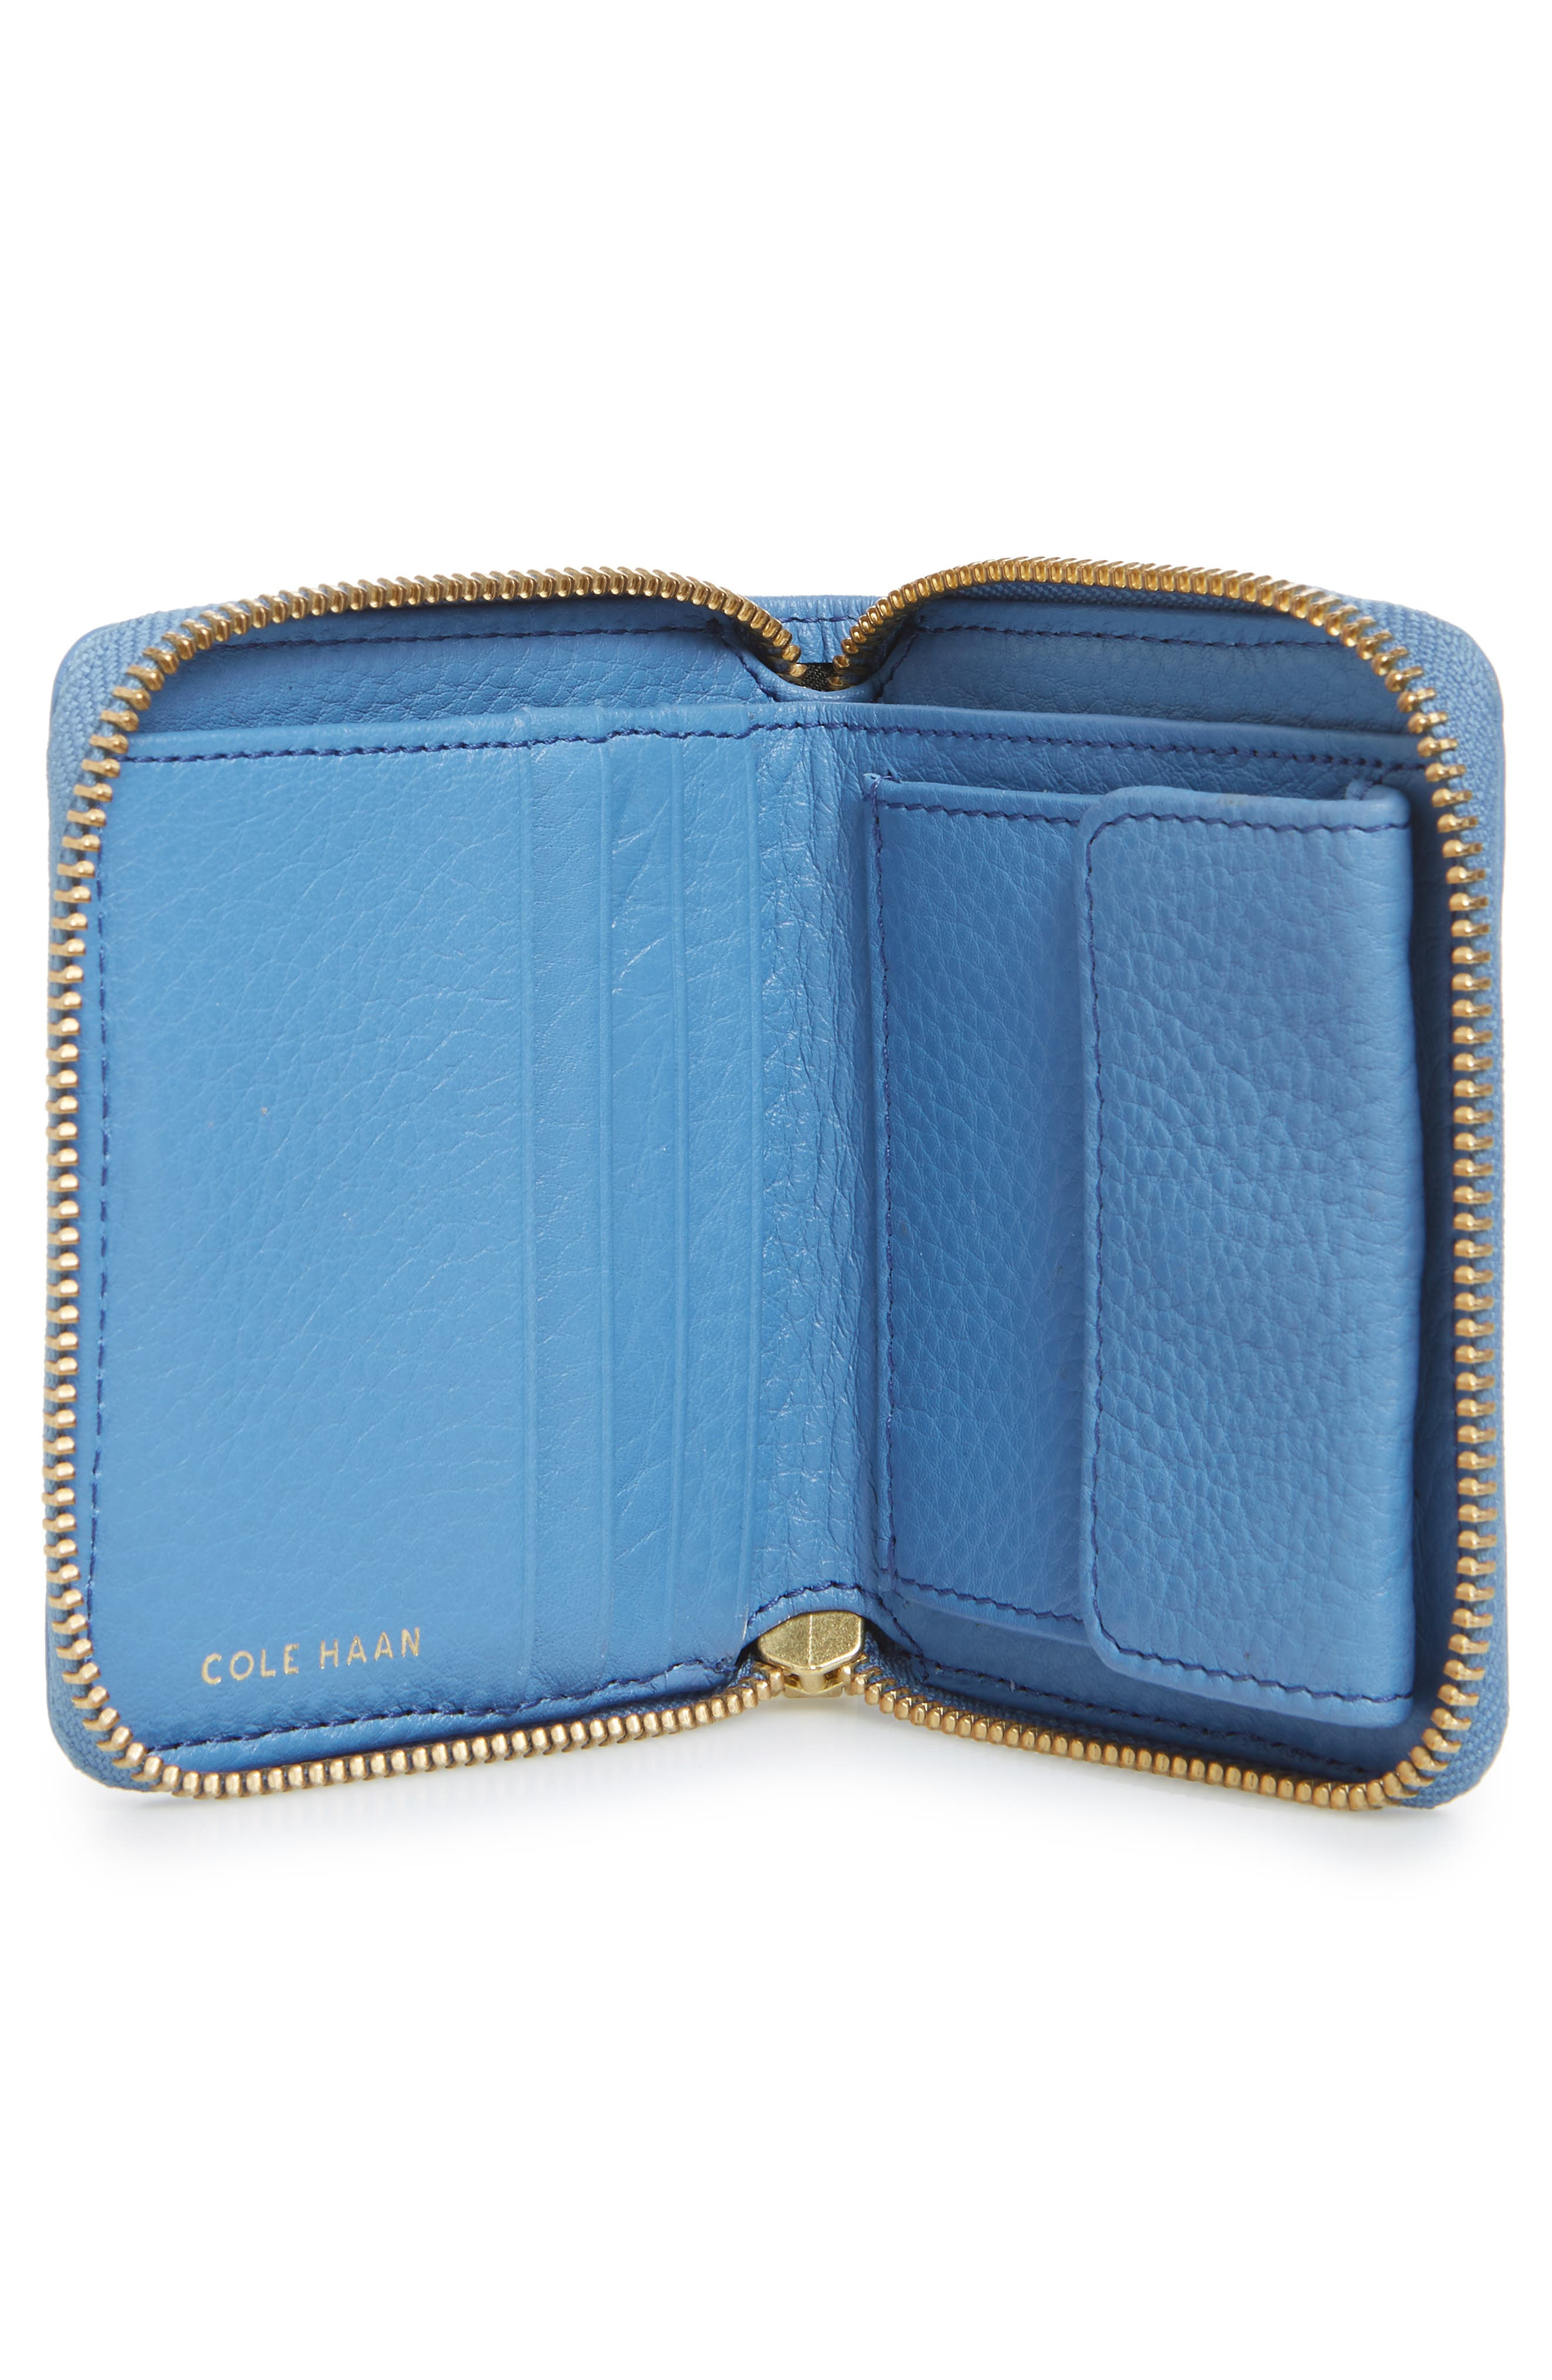 Cassidy Small RFID Leather Zip Wallet,                             Alternate thumbnail 3, color,                             Riverside